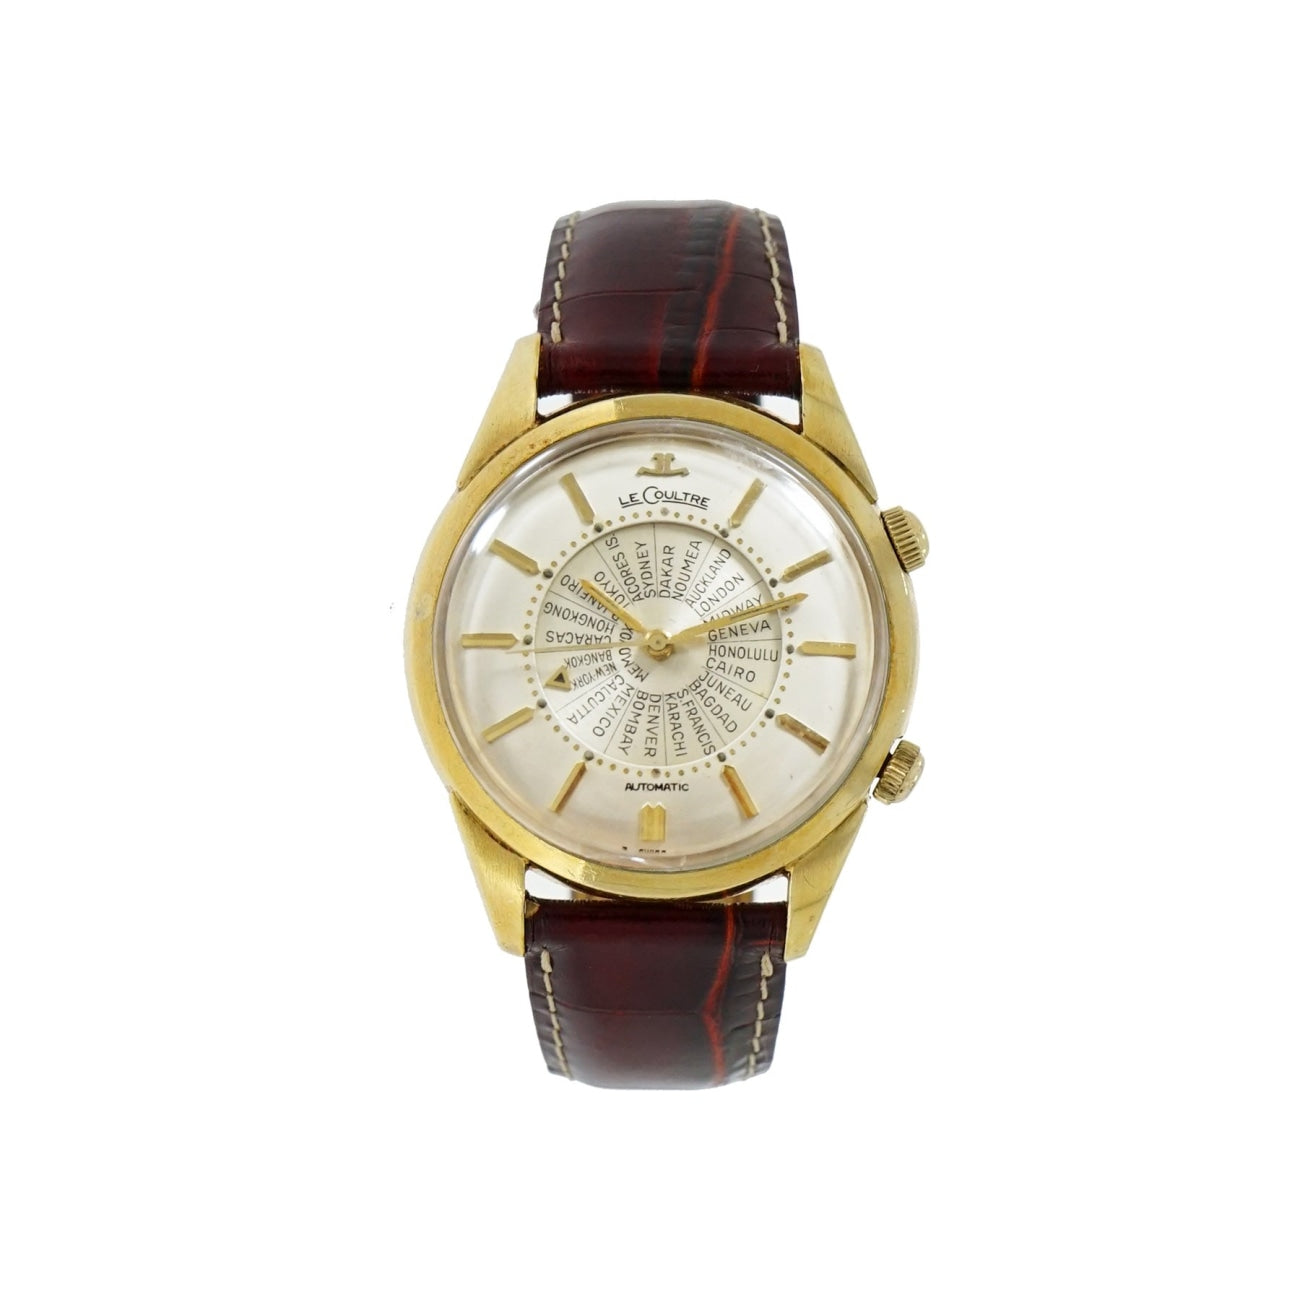 Pre-Owned Jaeger le Coultre Watches - Memovox | Manfredi Jewels